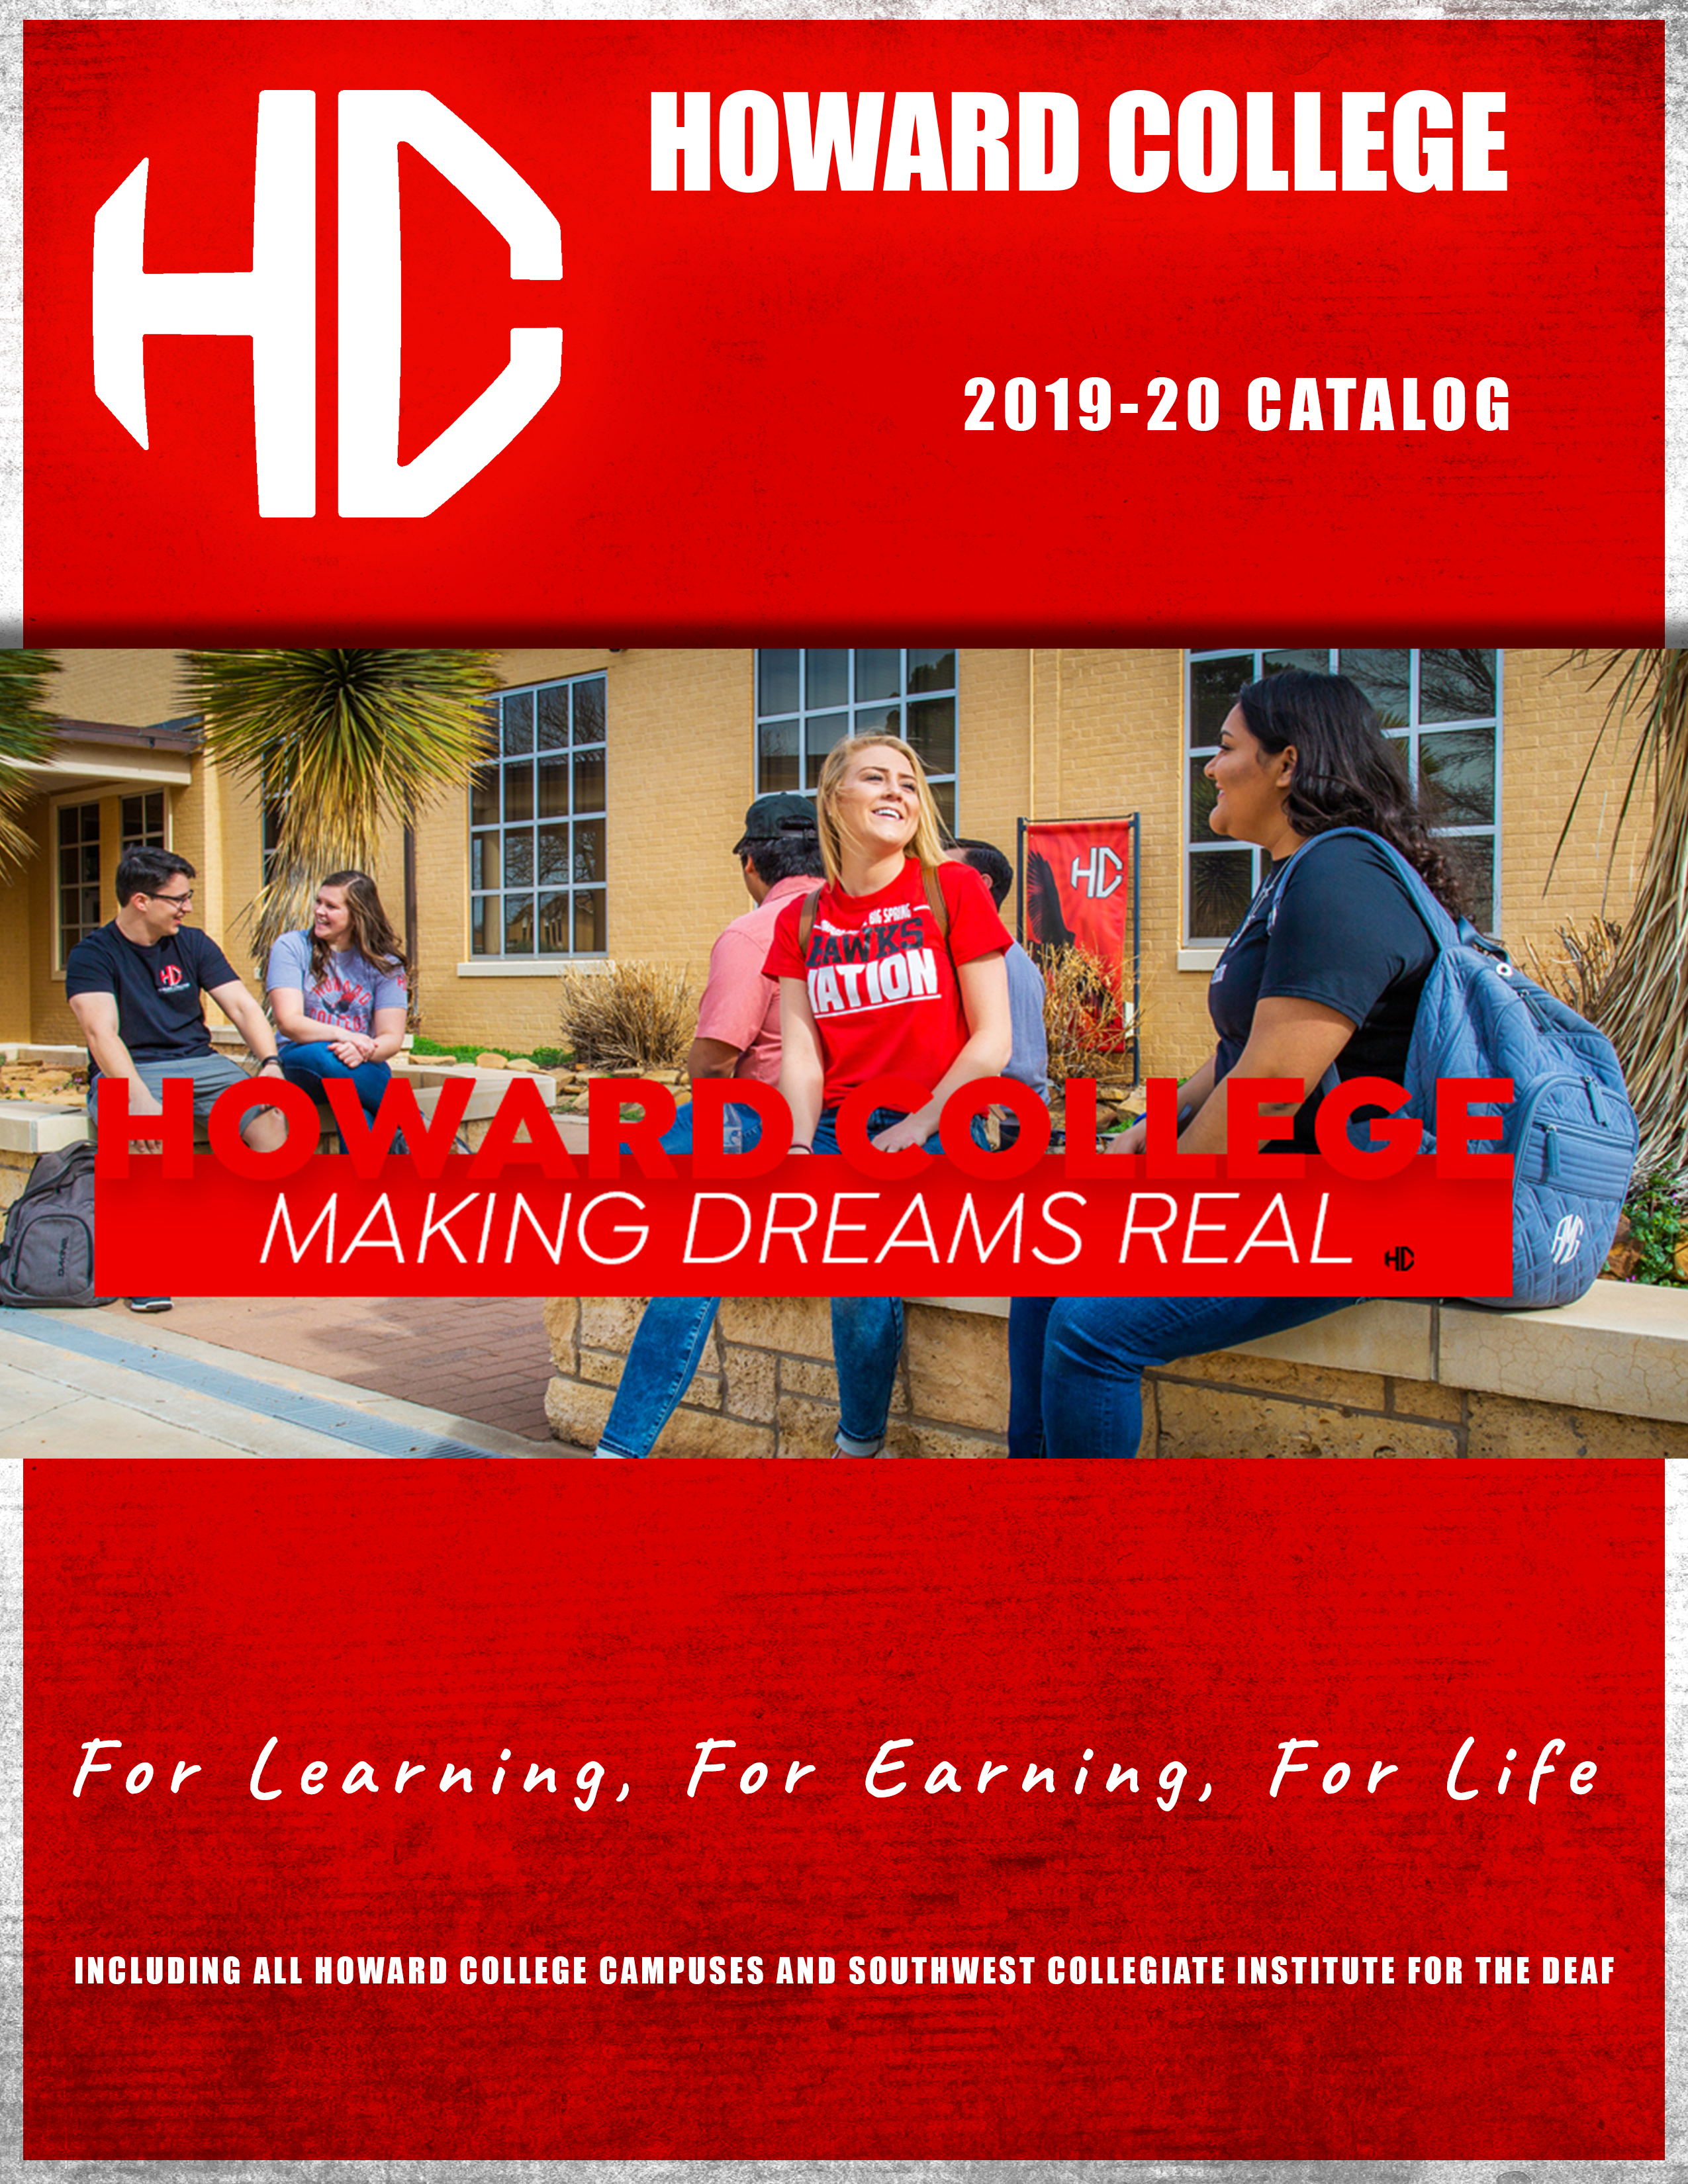 Howard College 2019-20 Catalog, Making Dreams Real...For Learning, For Earning, For Life.